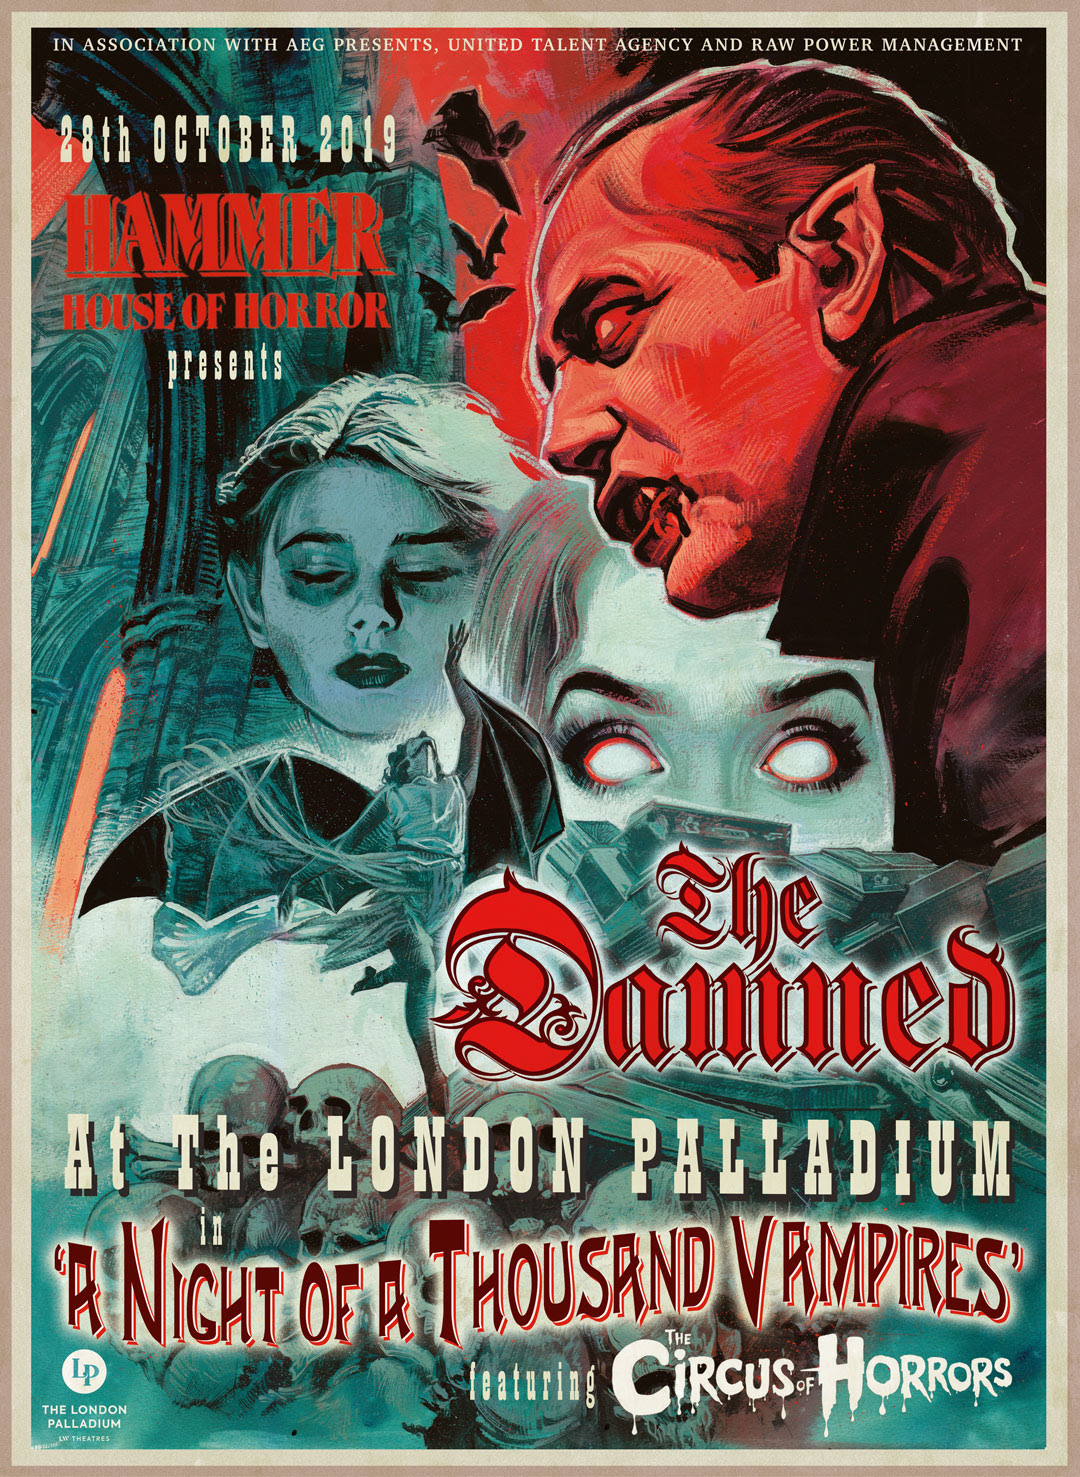 Curiosities – The Damned – An Evening Of A Thousand Vampires – Guinness book of world records